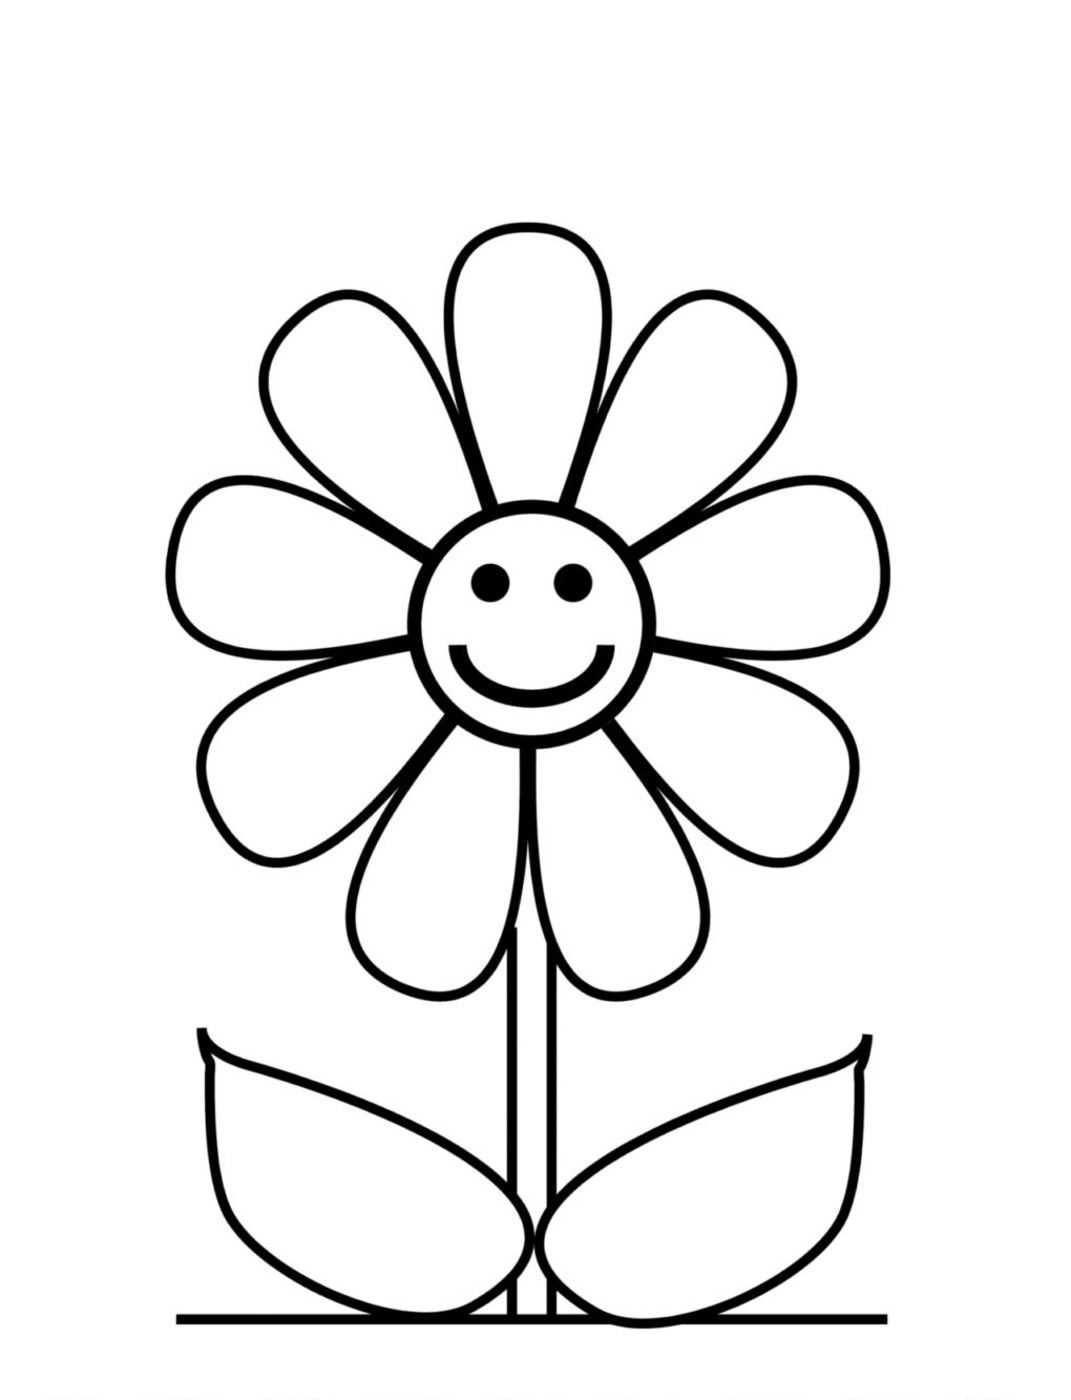 Free coloring pages spring flowers - Flower Cute Coloring Page Printable Coloring Pages Sheets For Kids Get The Latest Free Flower Cute Coloring Page Images Favorite Coloring Pages To Print